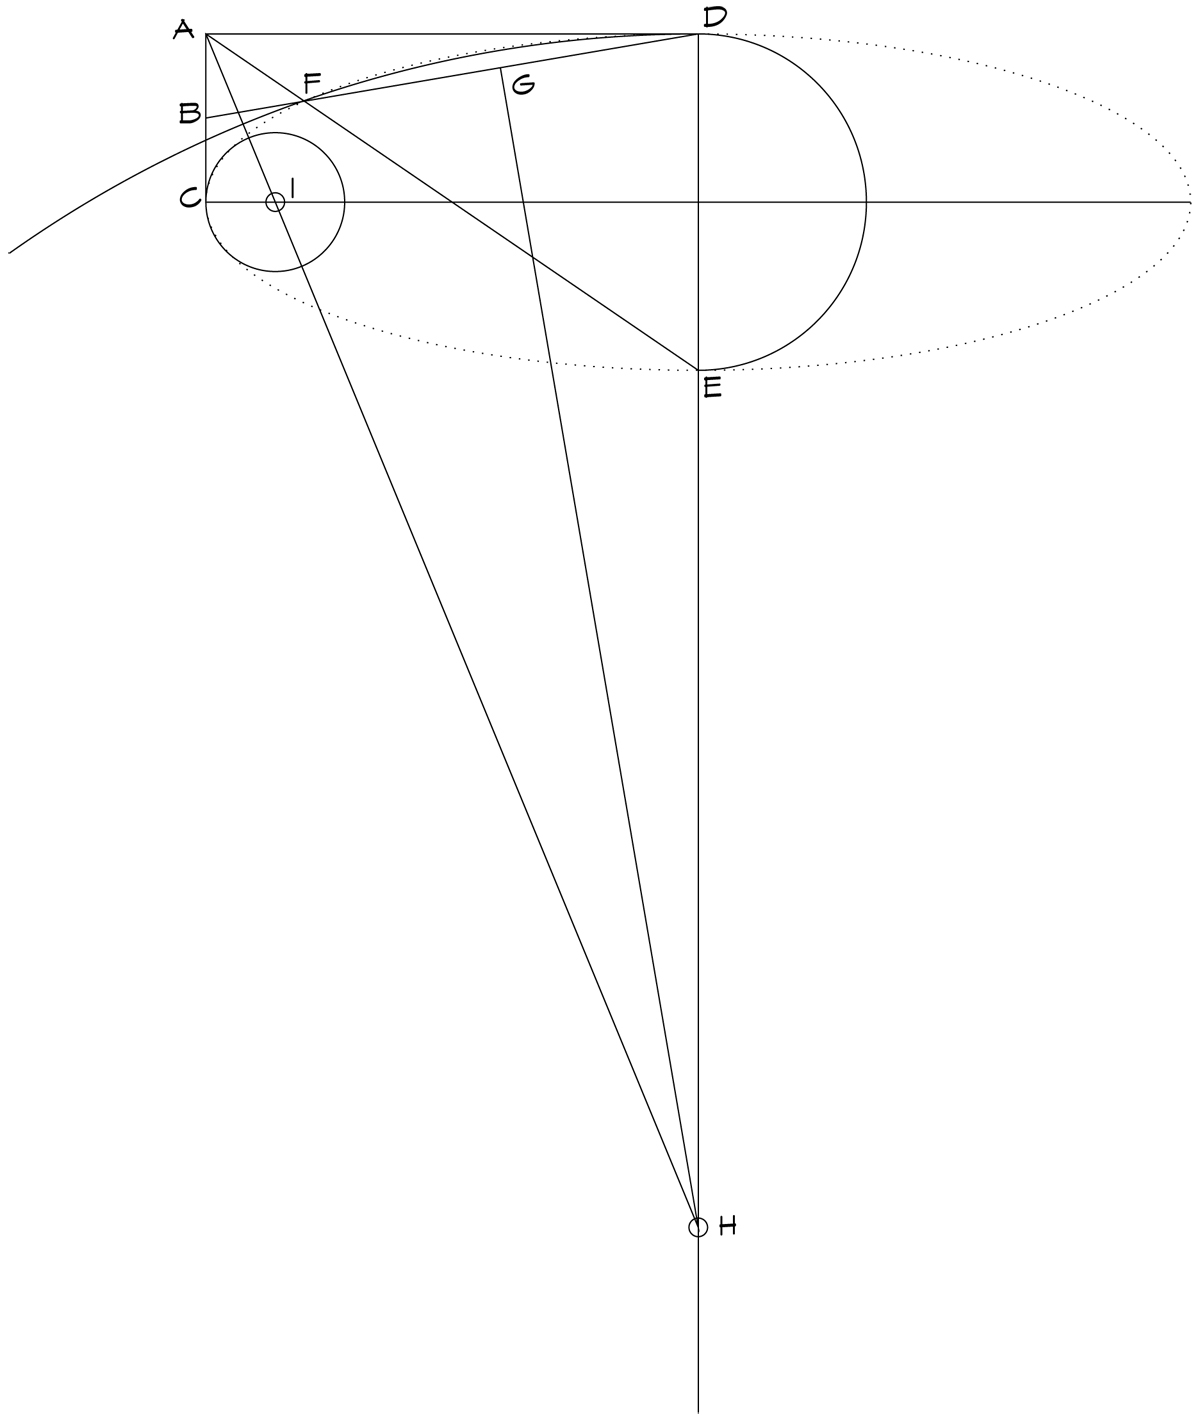 They Follow The Ellipse Very Closely, But Seem To Be Missing A Possible  Extra Center? A Five Centered Approximation? Here Is An Example,